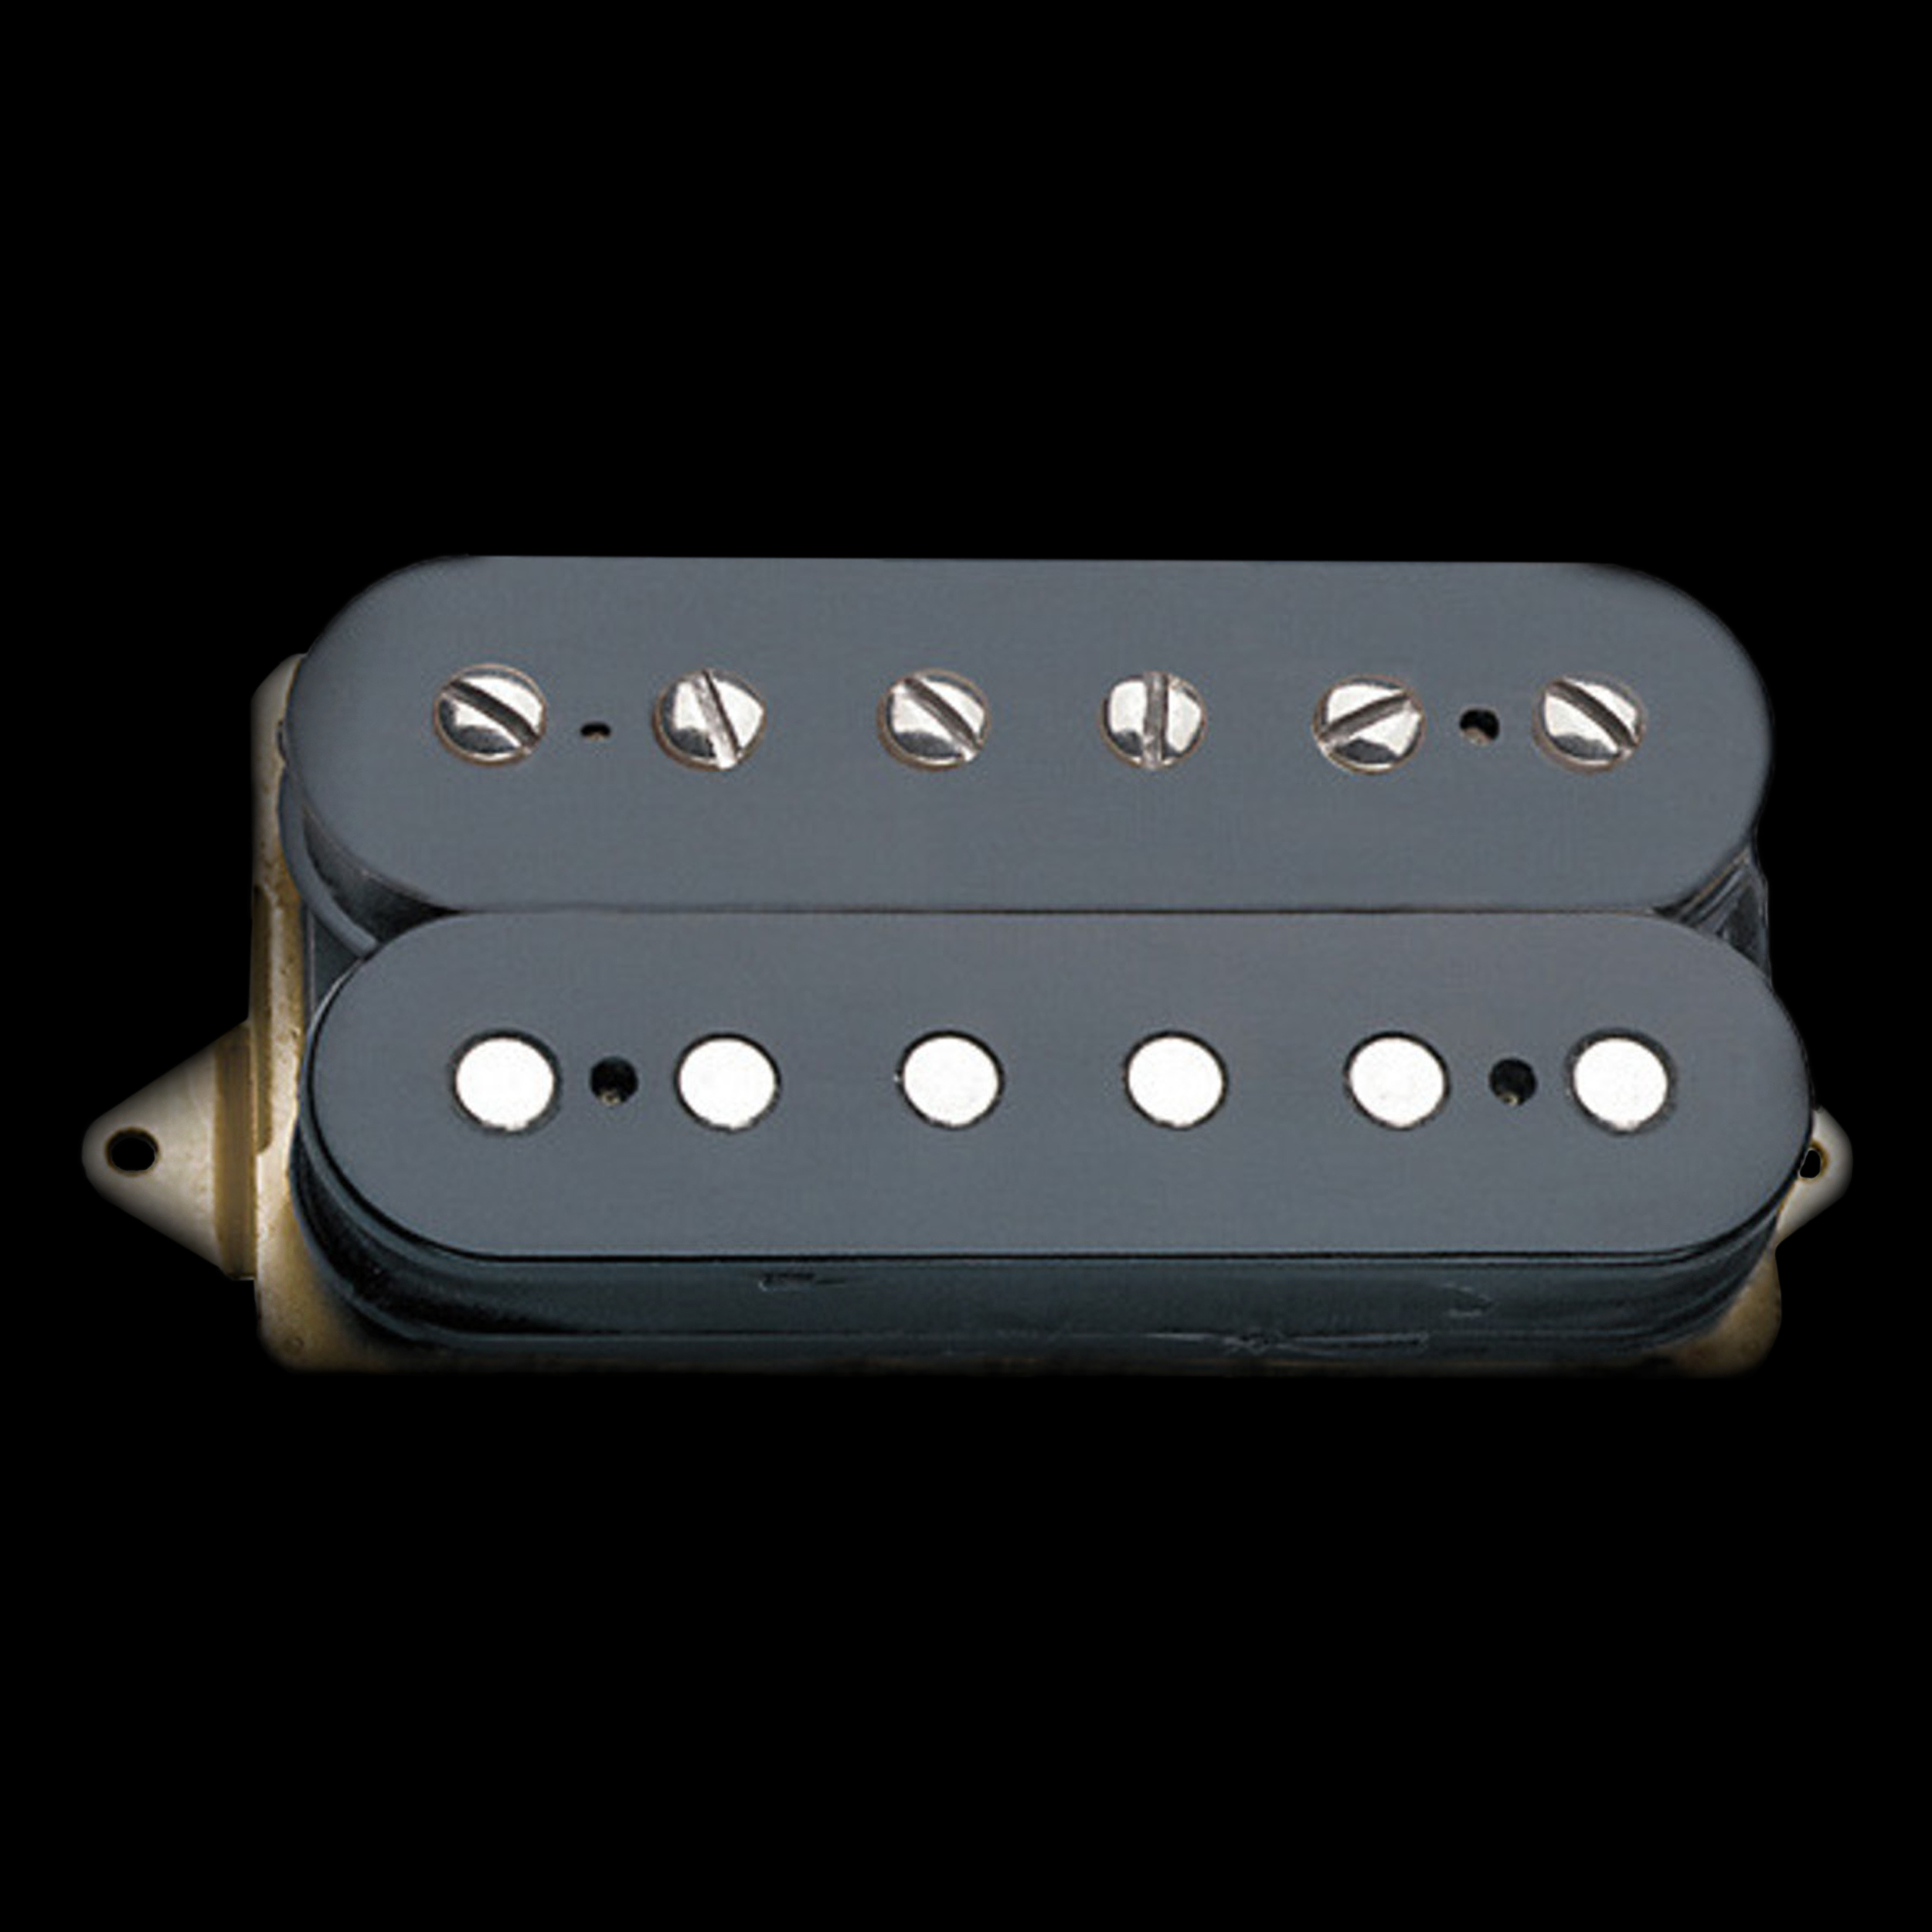 dimarzio air zone dp192 humbucker electric guitar pickup ebay. Black Bedroom Furniture Sets. Home Design Ideas